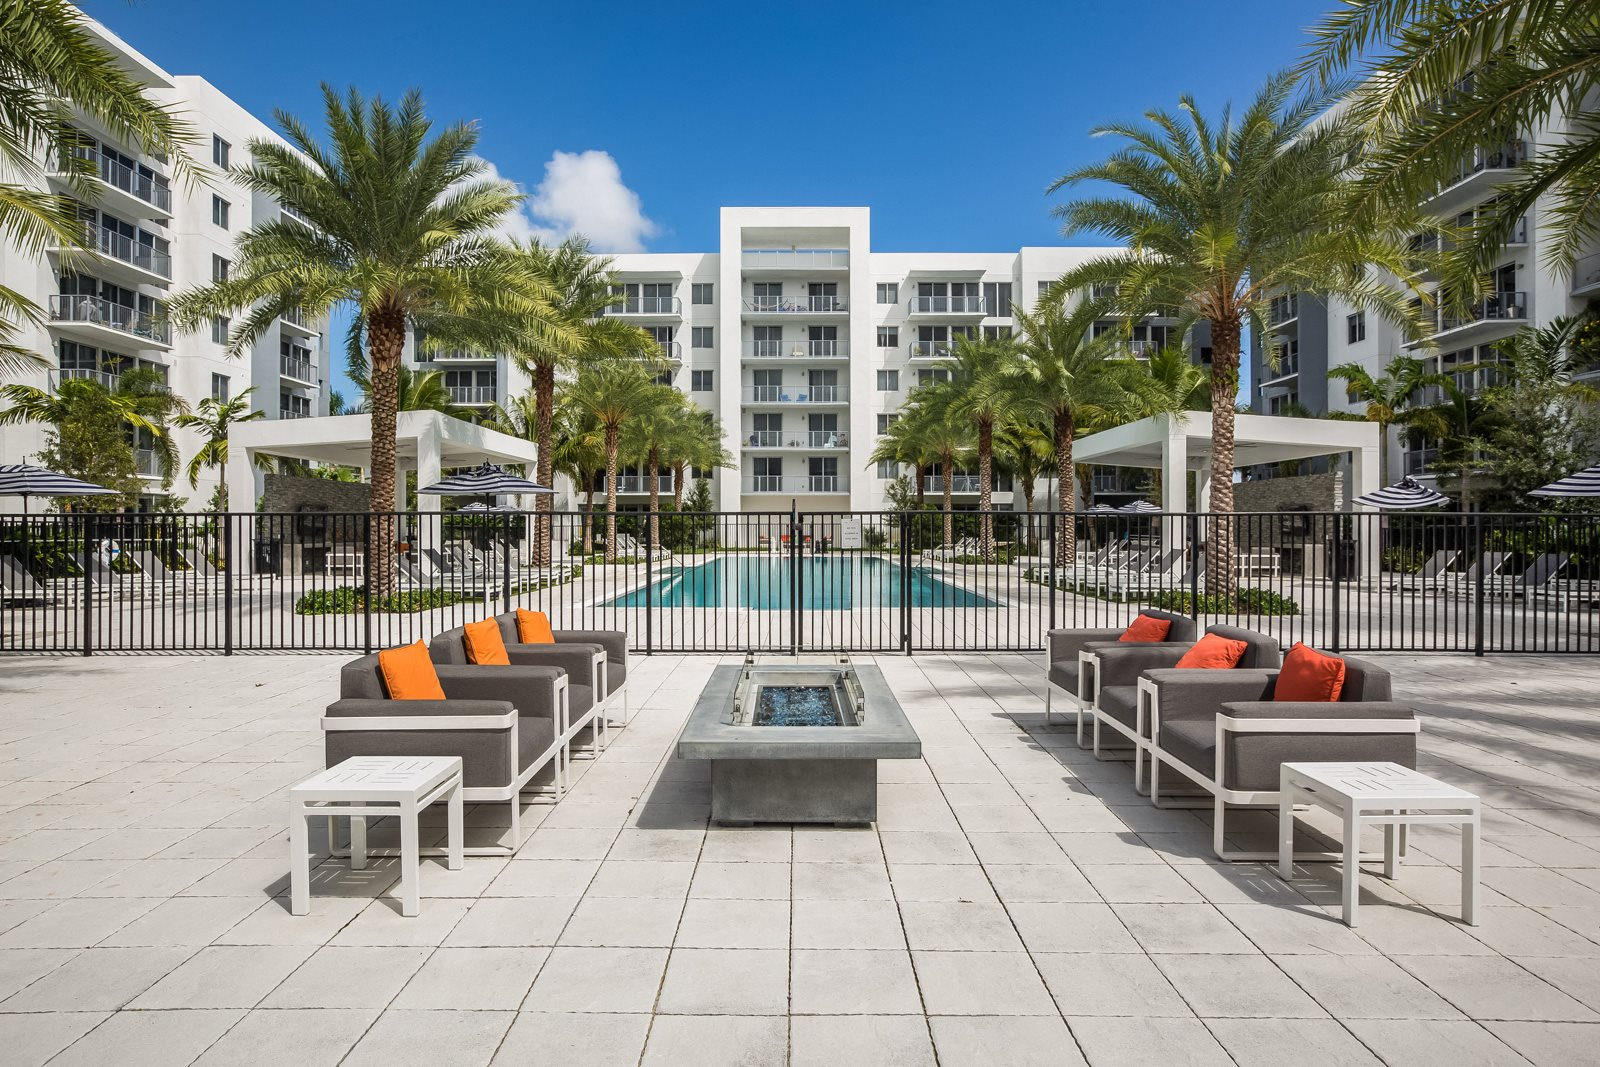 Outdoor Lounge at Allure by Windsor, Boca Raton, Florida